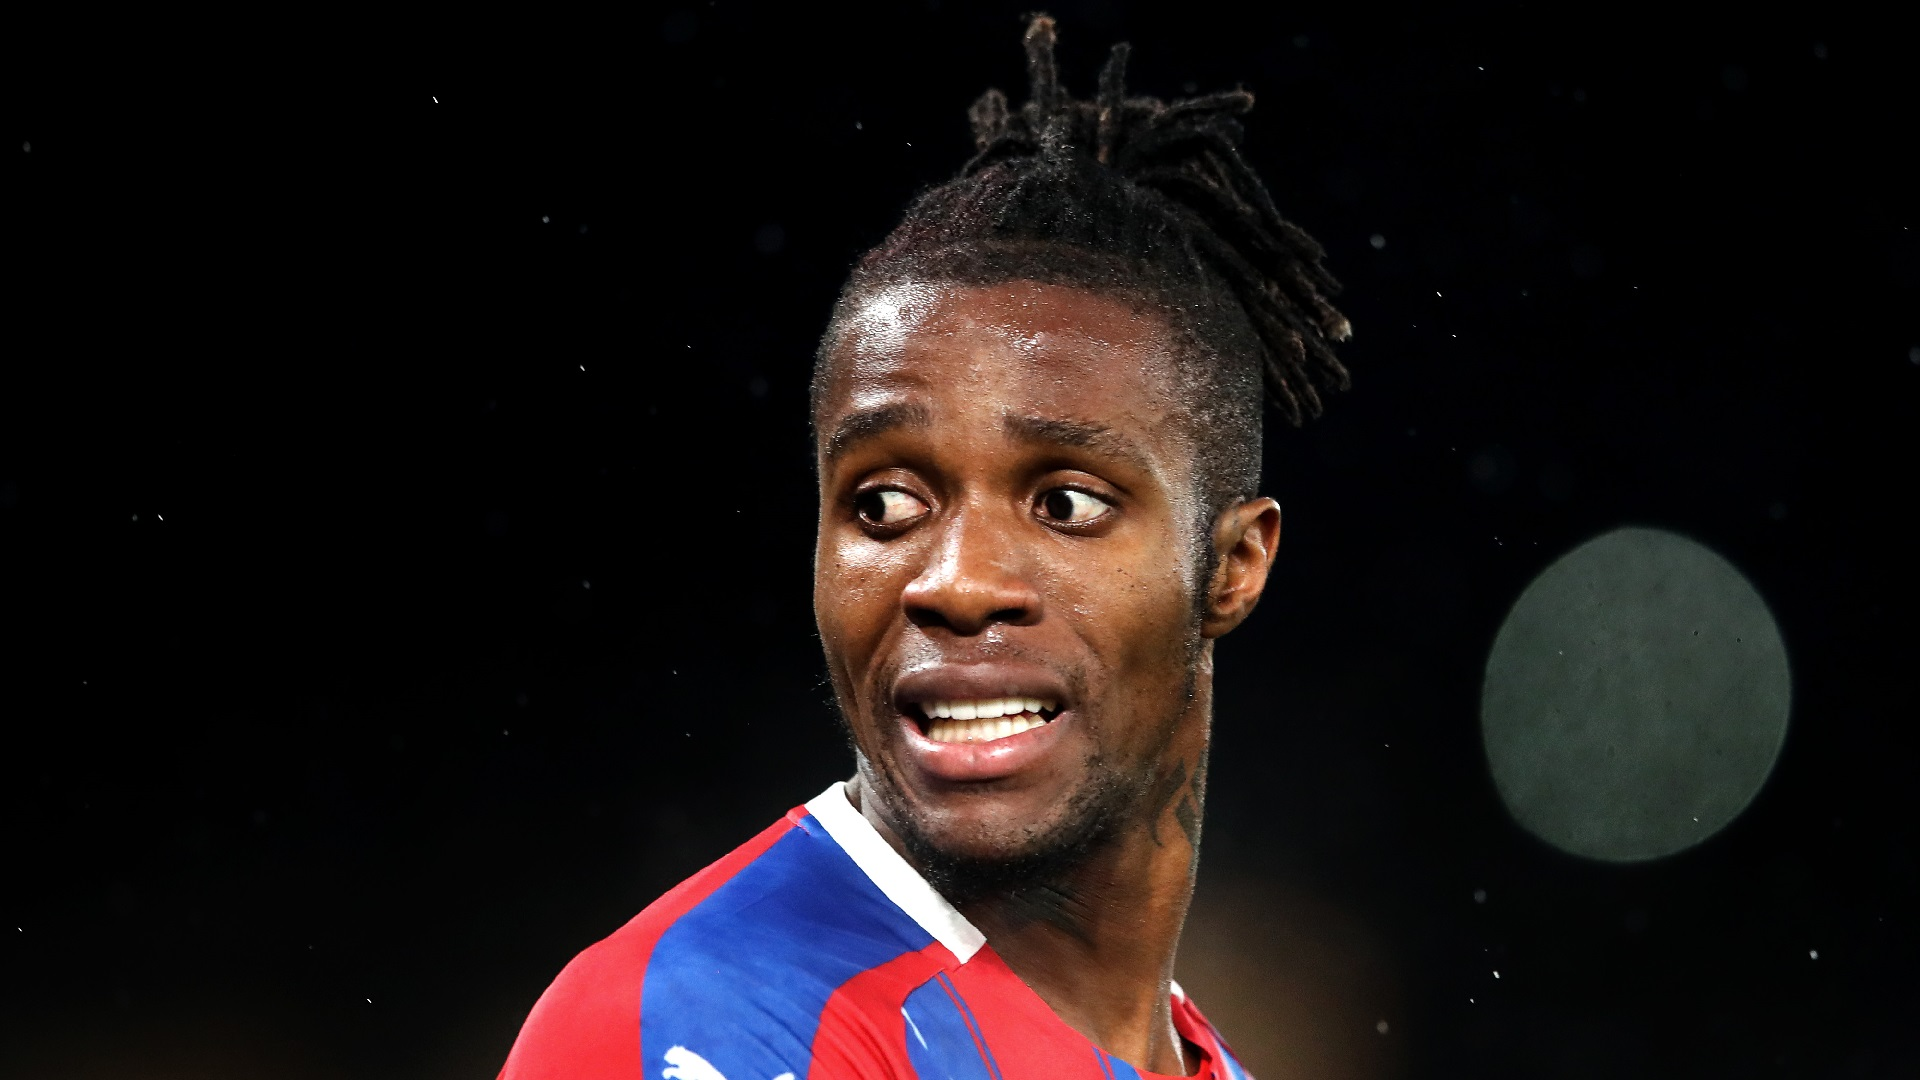 Crystal Palace & Aston Villa condemn 'disgusting racist messages' directed at Zaha